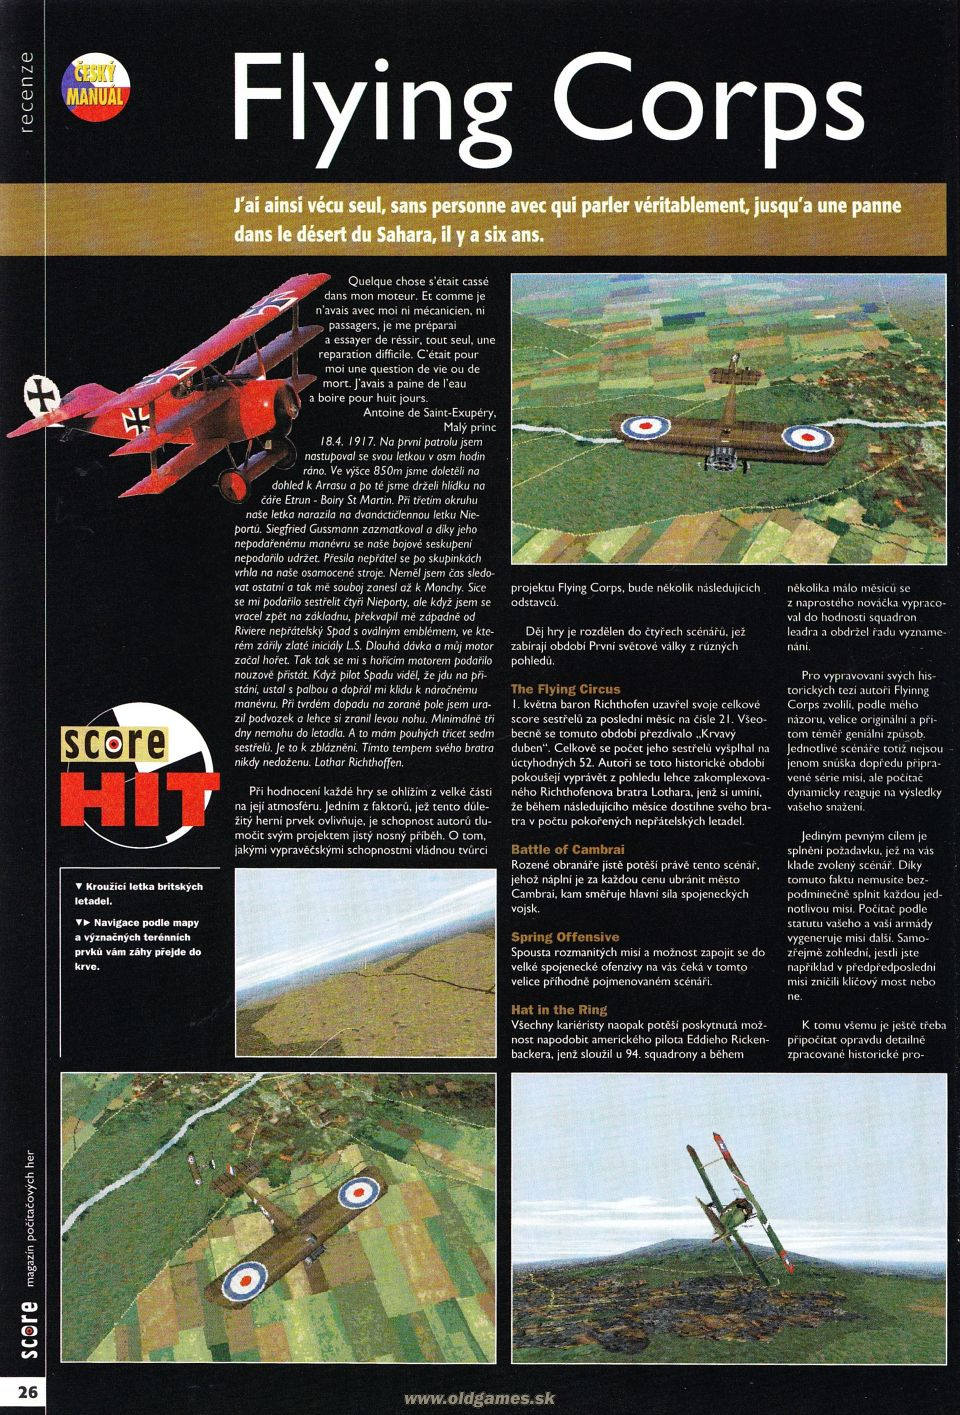 Flying Corps review